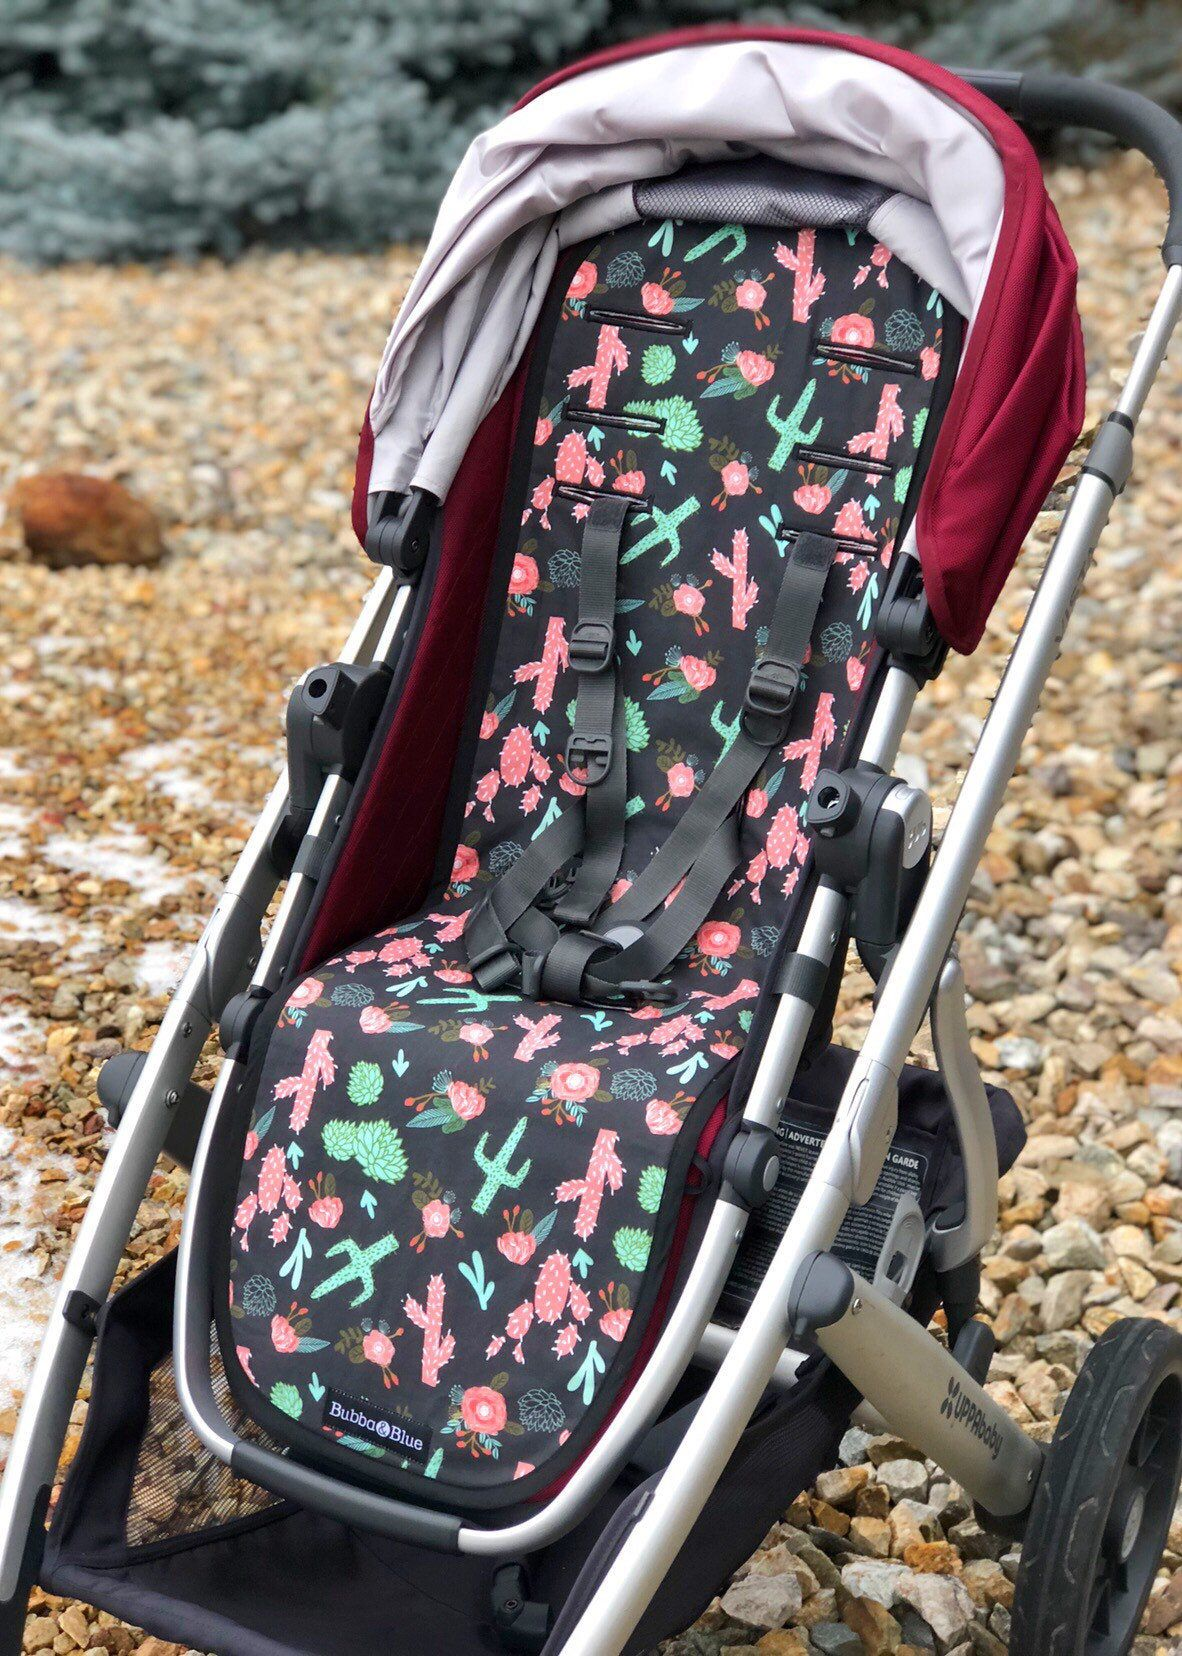 Cactus Floral Valco Snap 3 Stroller Liner Strap Pads With